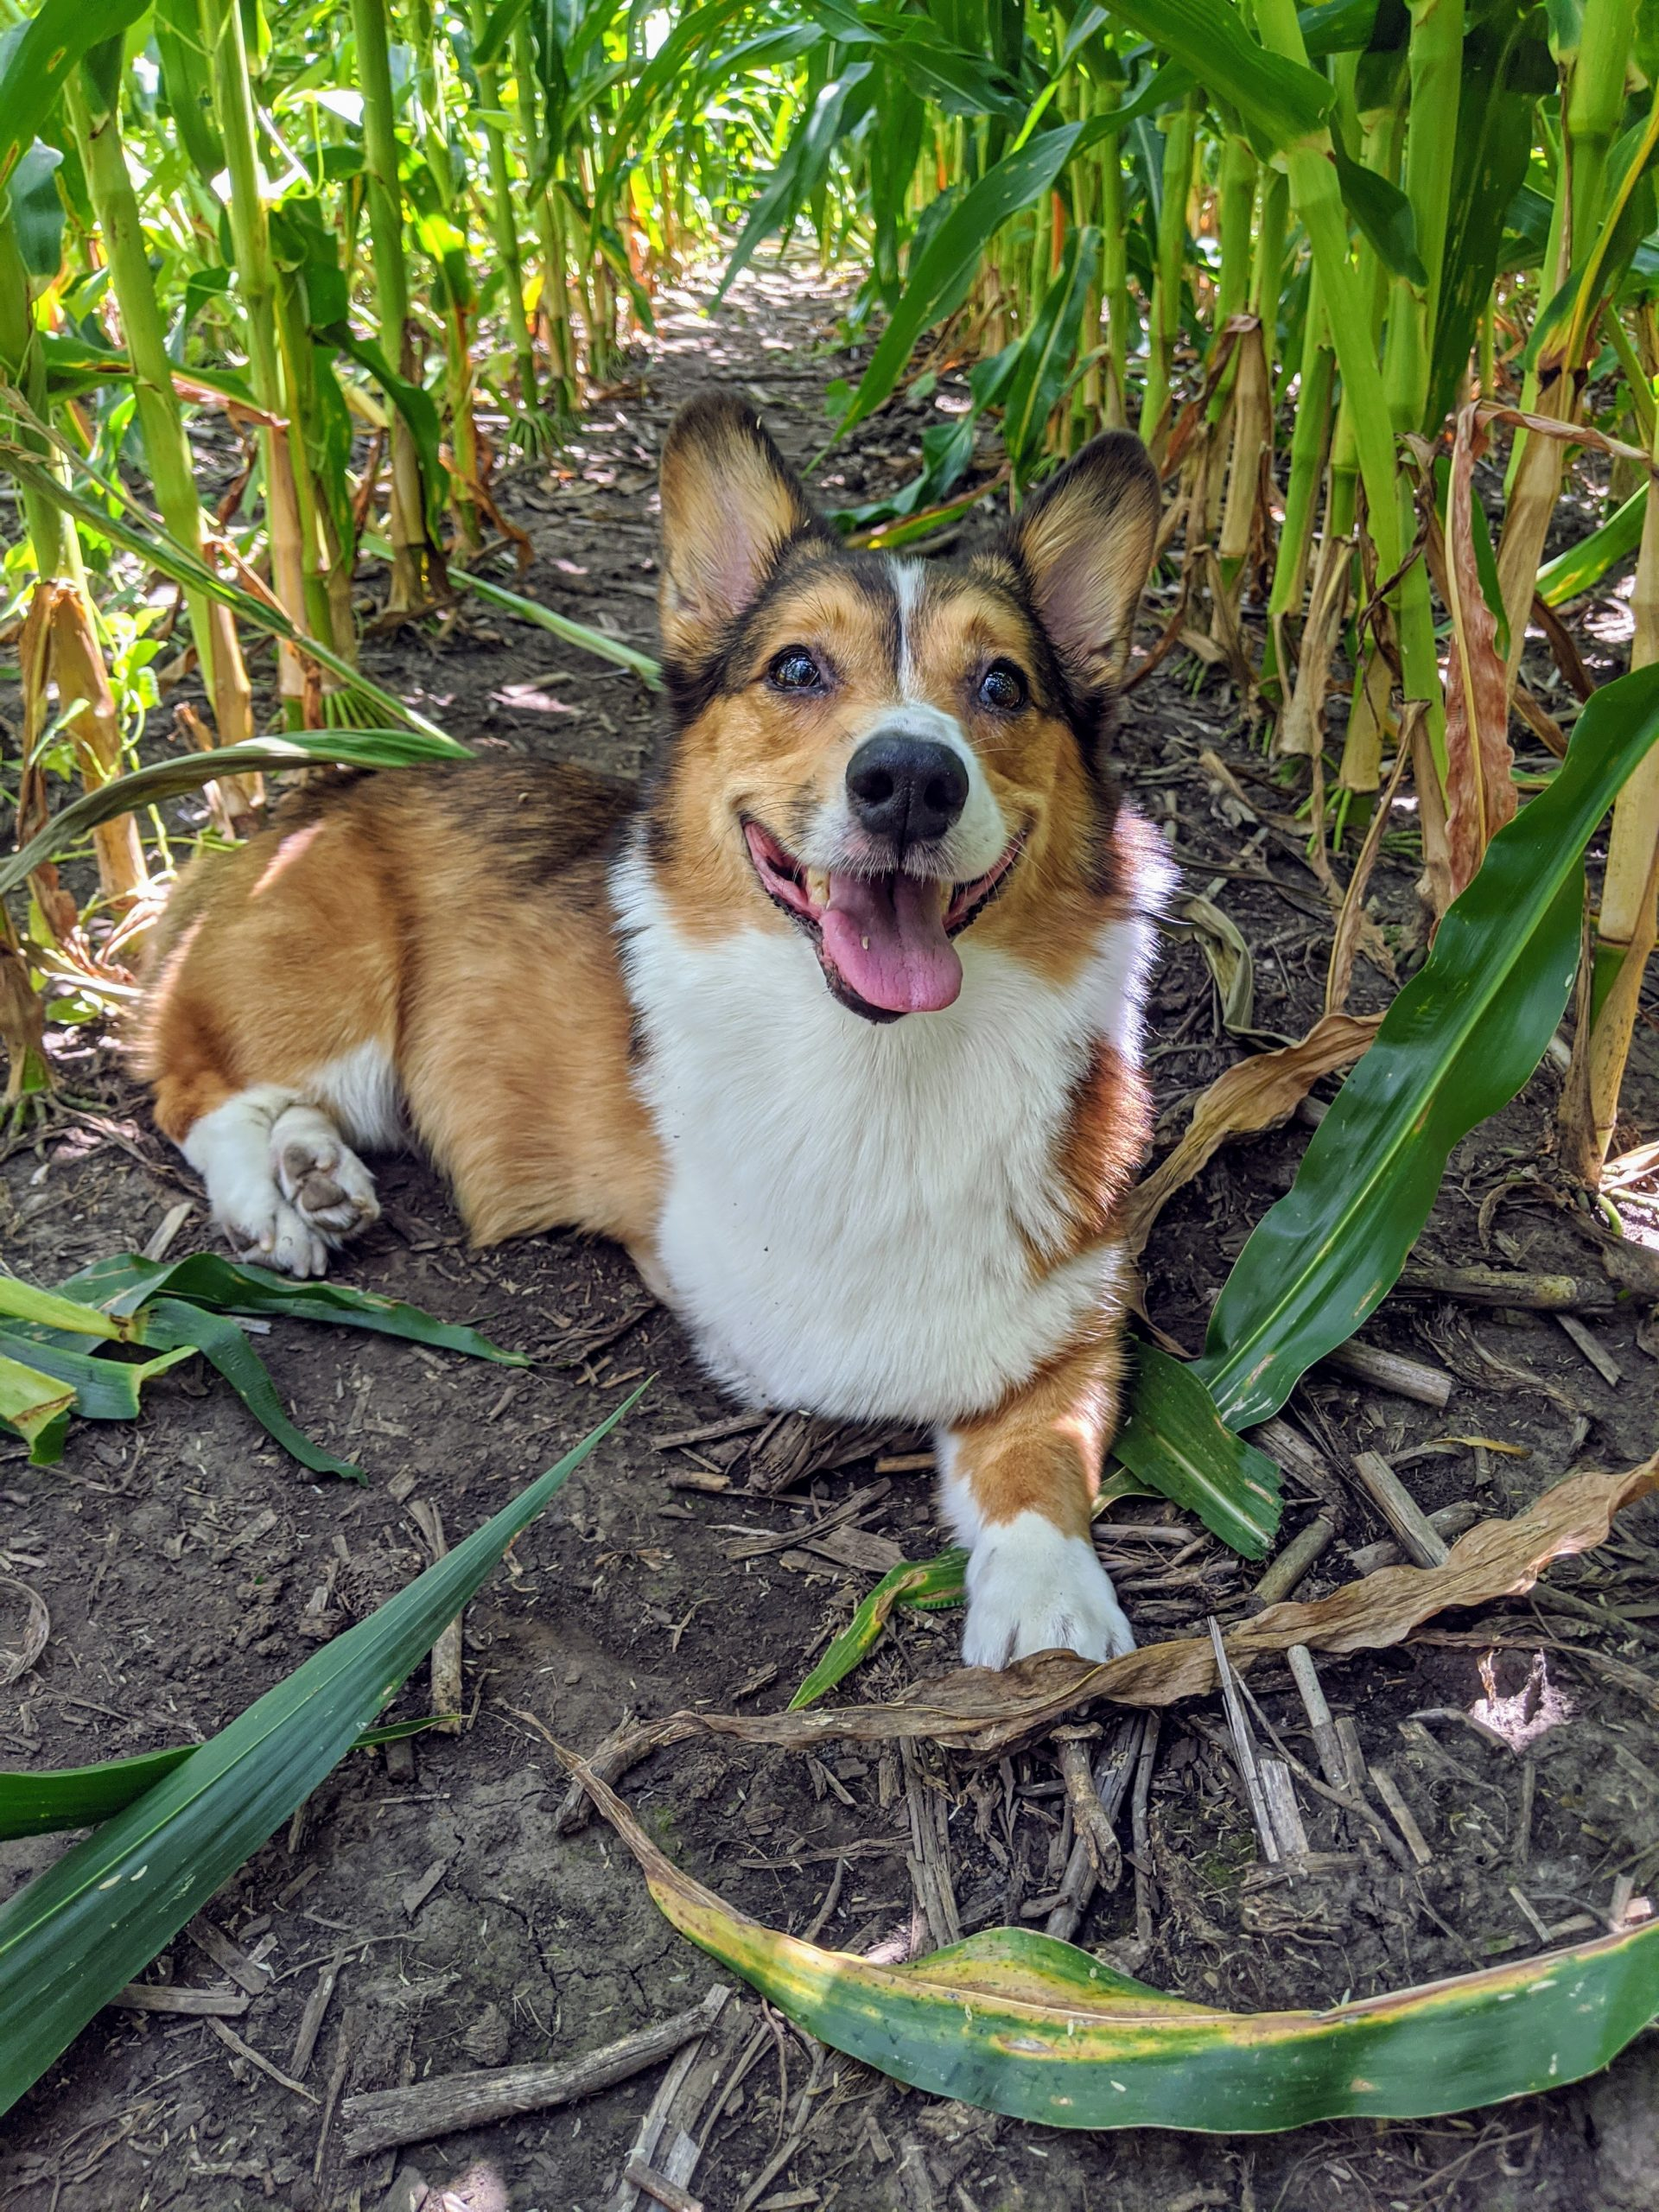 Charles, a three-legged sable pembroke welsh corgi, laying on the soil within rows of corn